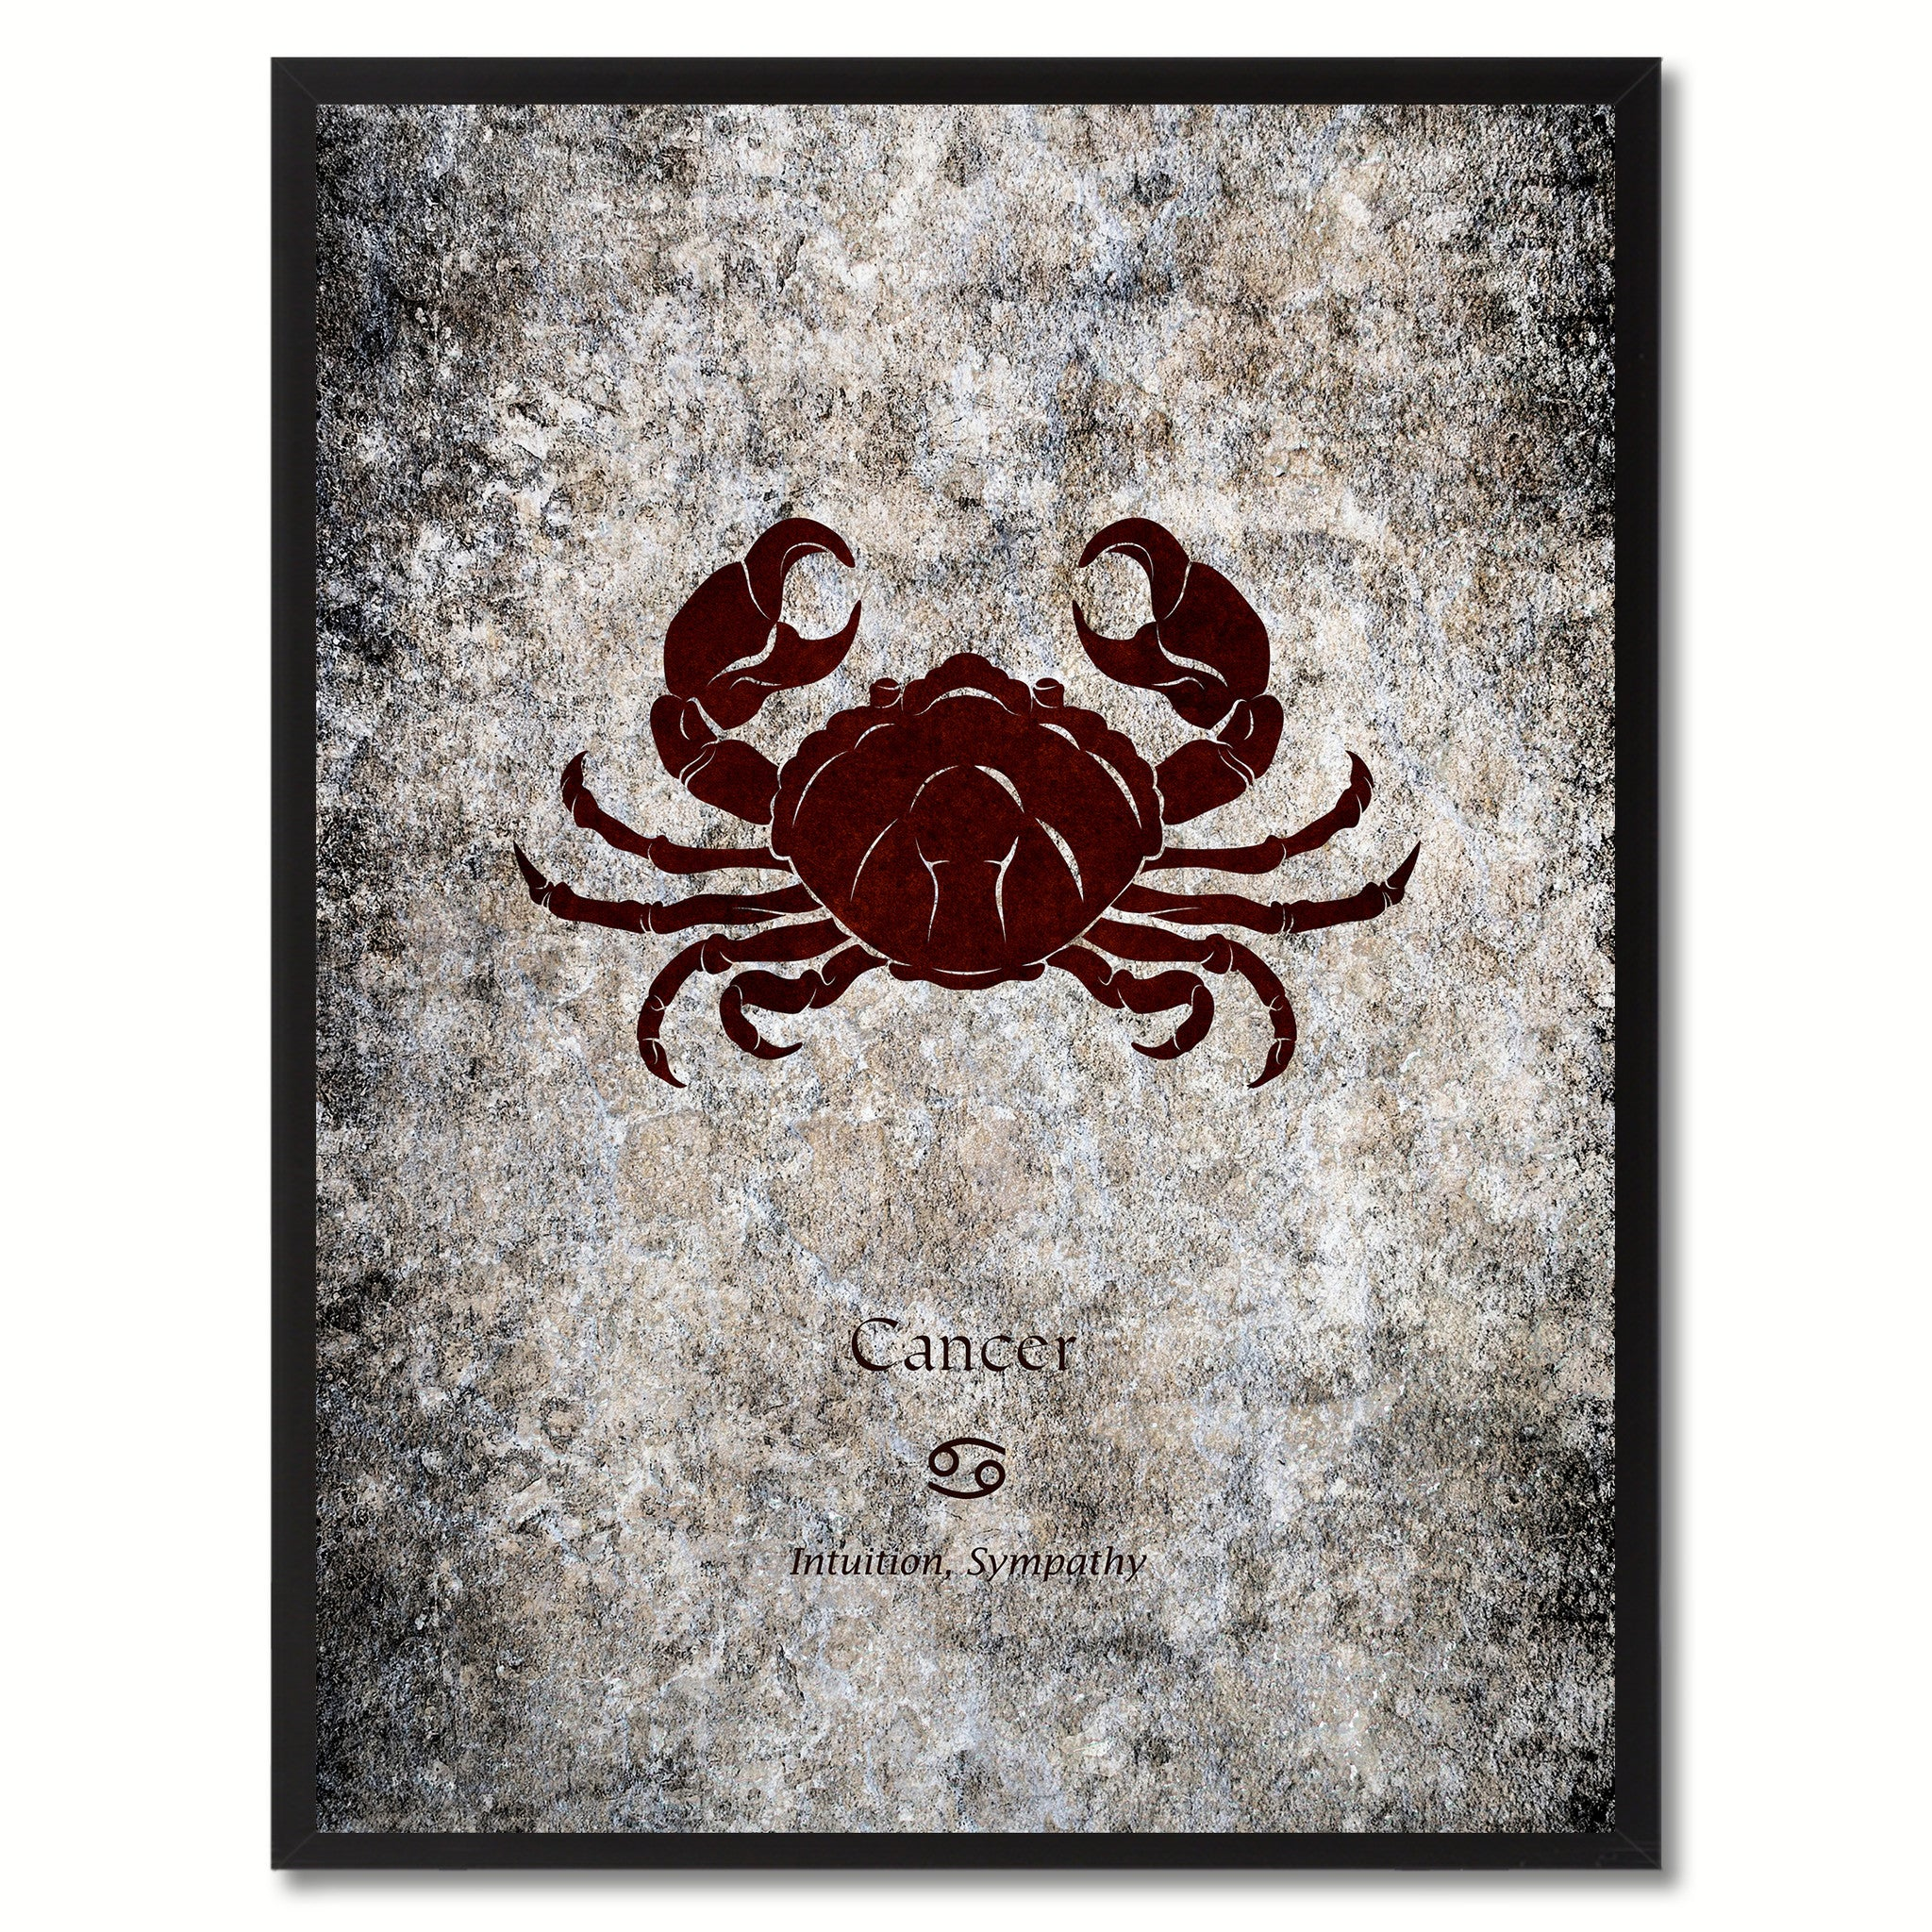 Zodiac cancer horoscope astrology canvas print picture frame home decor wall art gift